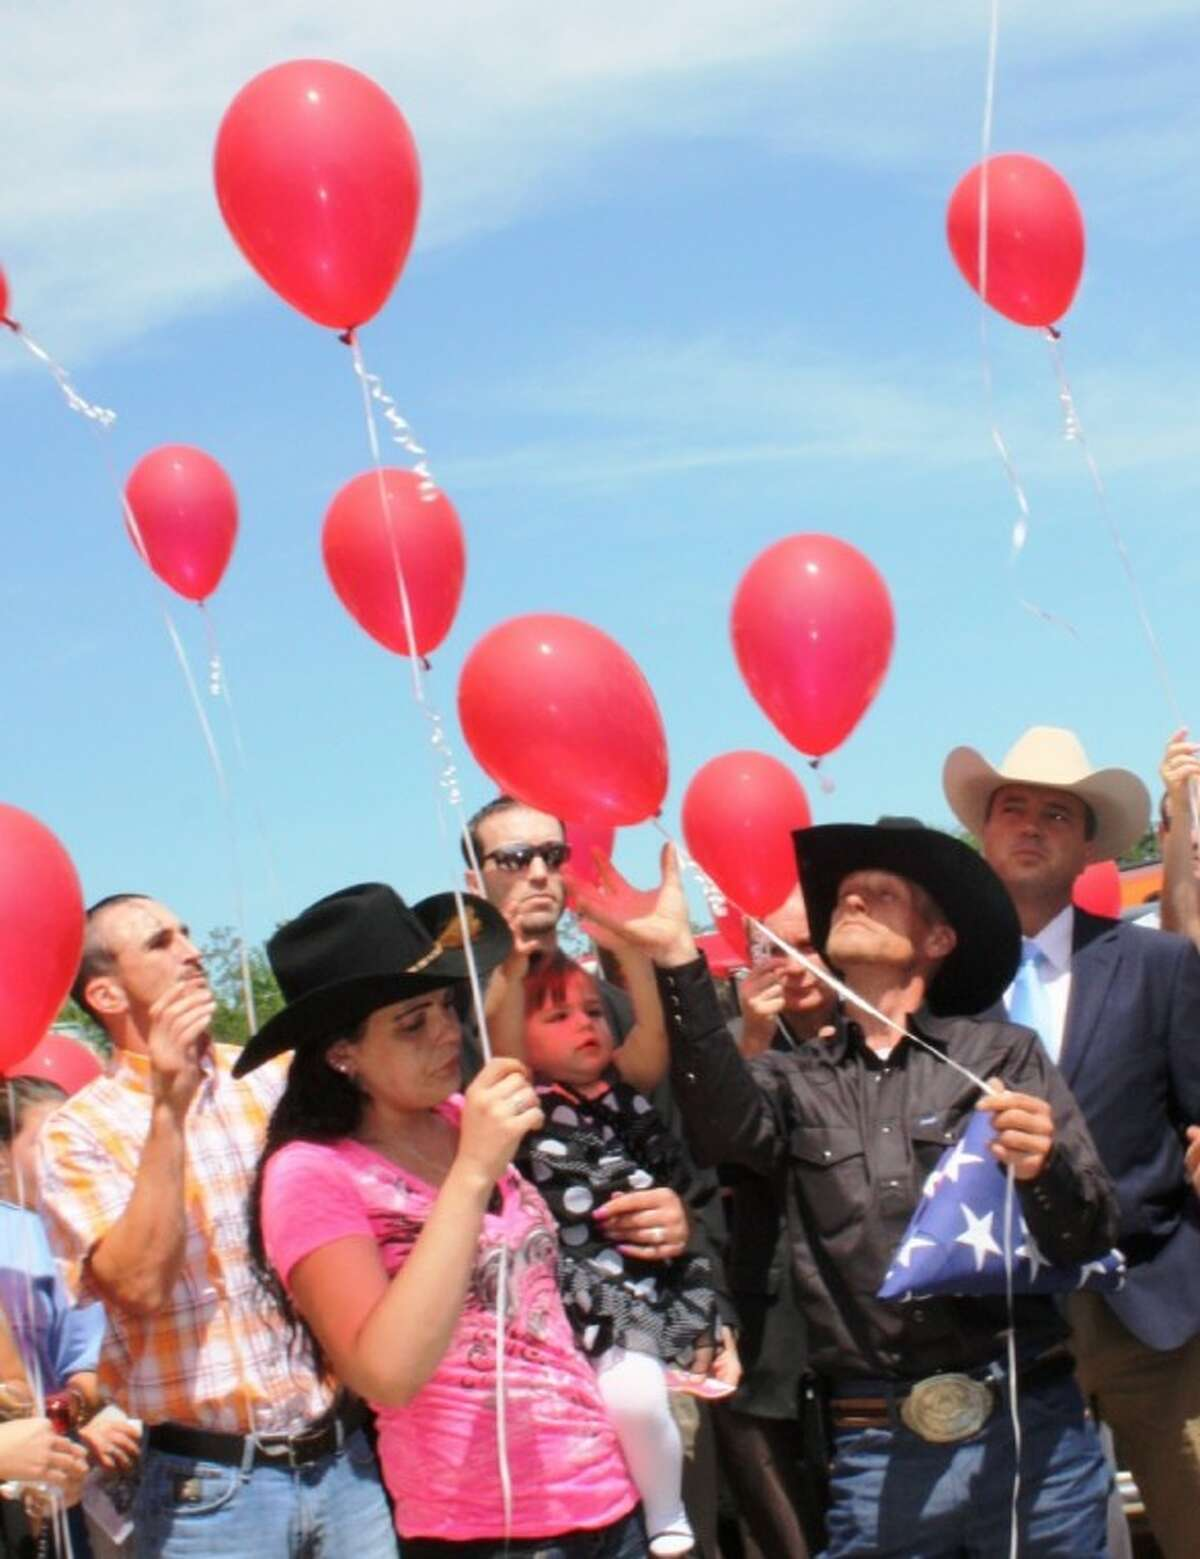 Mike and April Davis and their daughter, Abbygail, release balloons in recognition of their son Devon, at the boy's funeral on Friday, April 6, at Cornerstone Church of Cleveland. Devon was missing for several days before his body was found in a nearby lake near his family's home in Sam Houston Lake Estates.